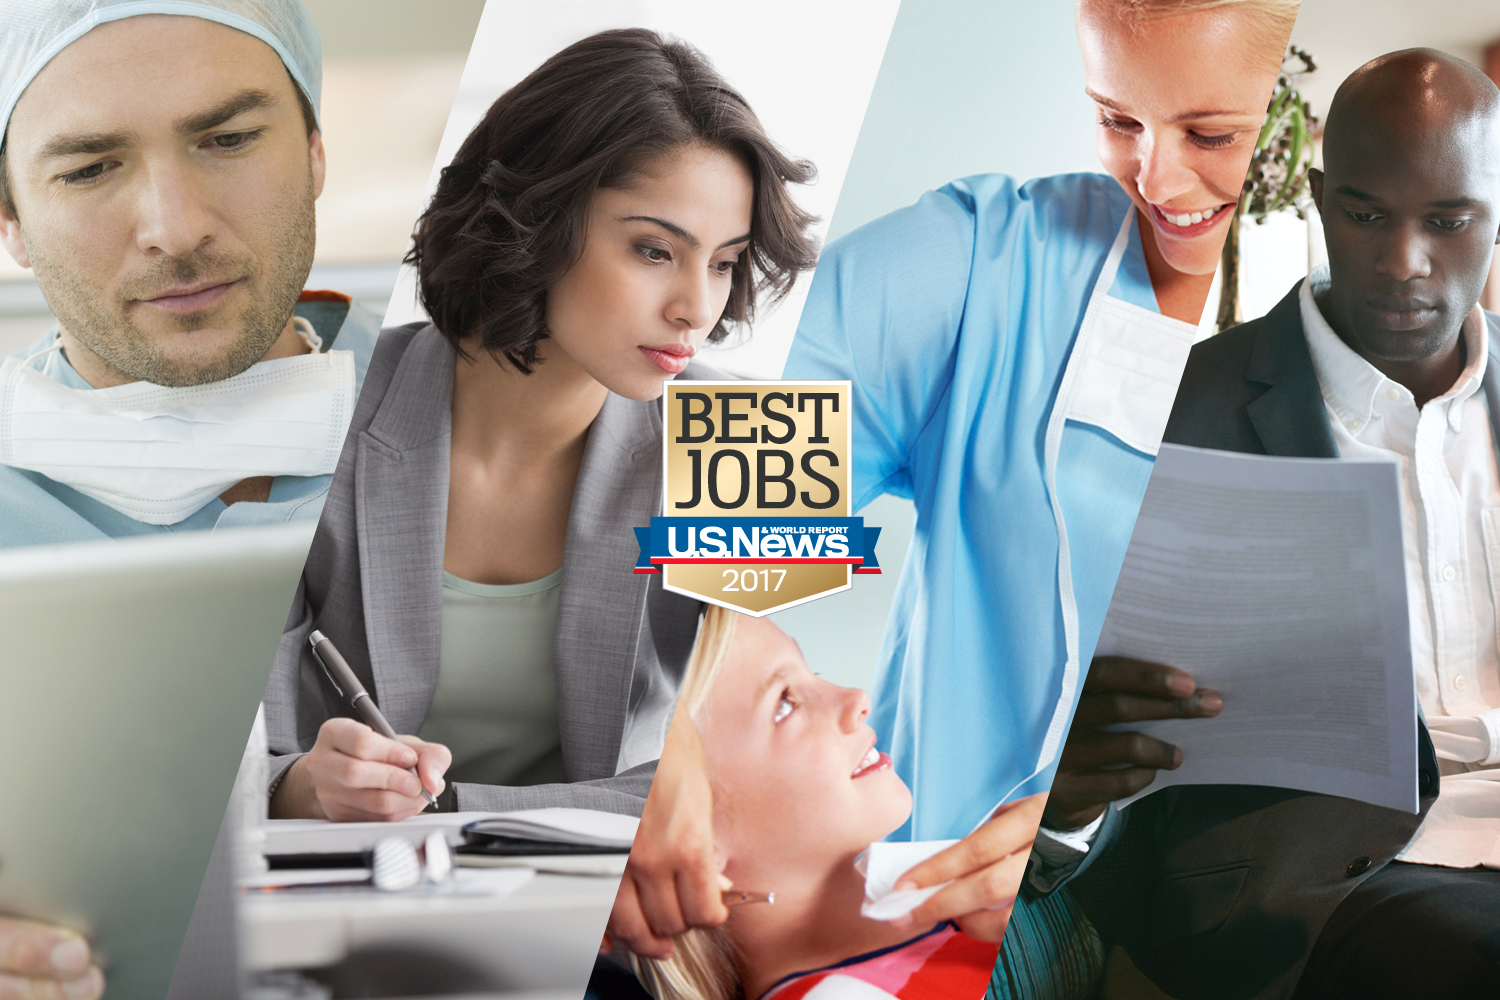 Short certificate programs that pay well 2017 best design undergraduate certificate courses in 2017 18 business administration education and careers xflitez Choice Image